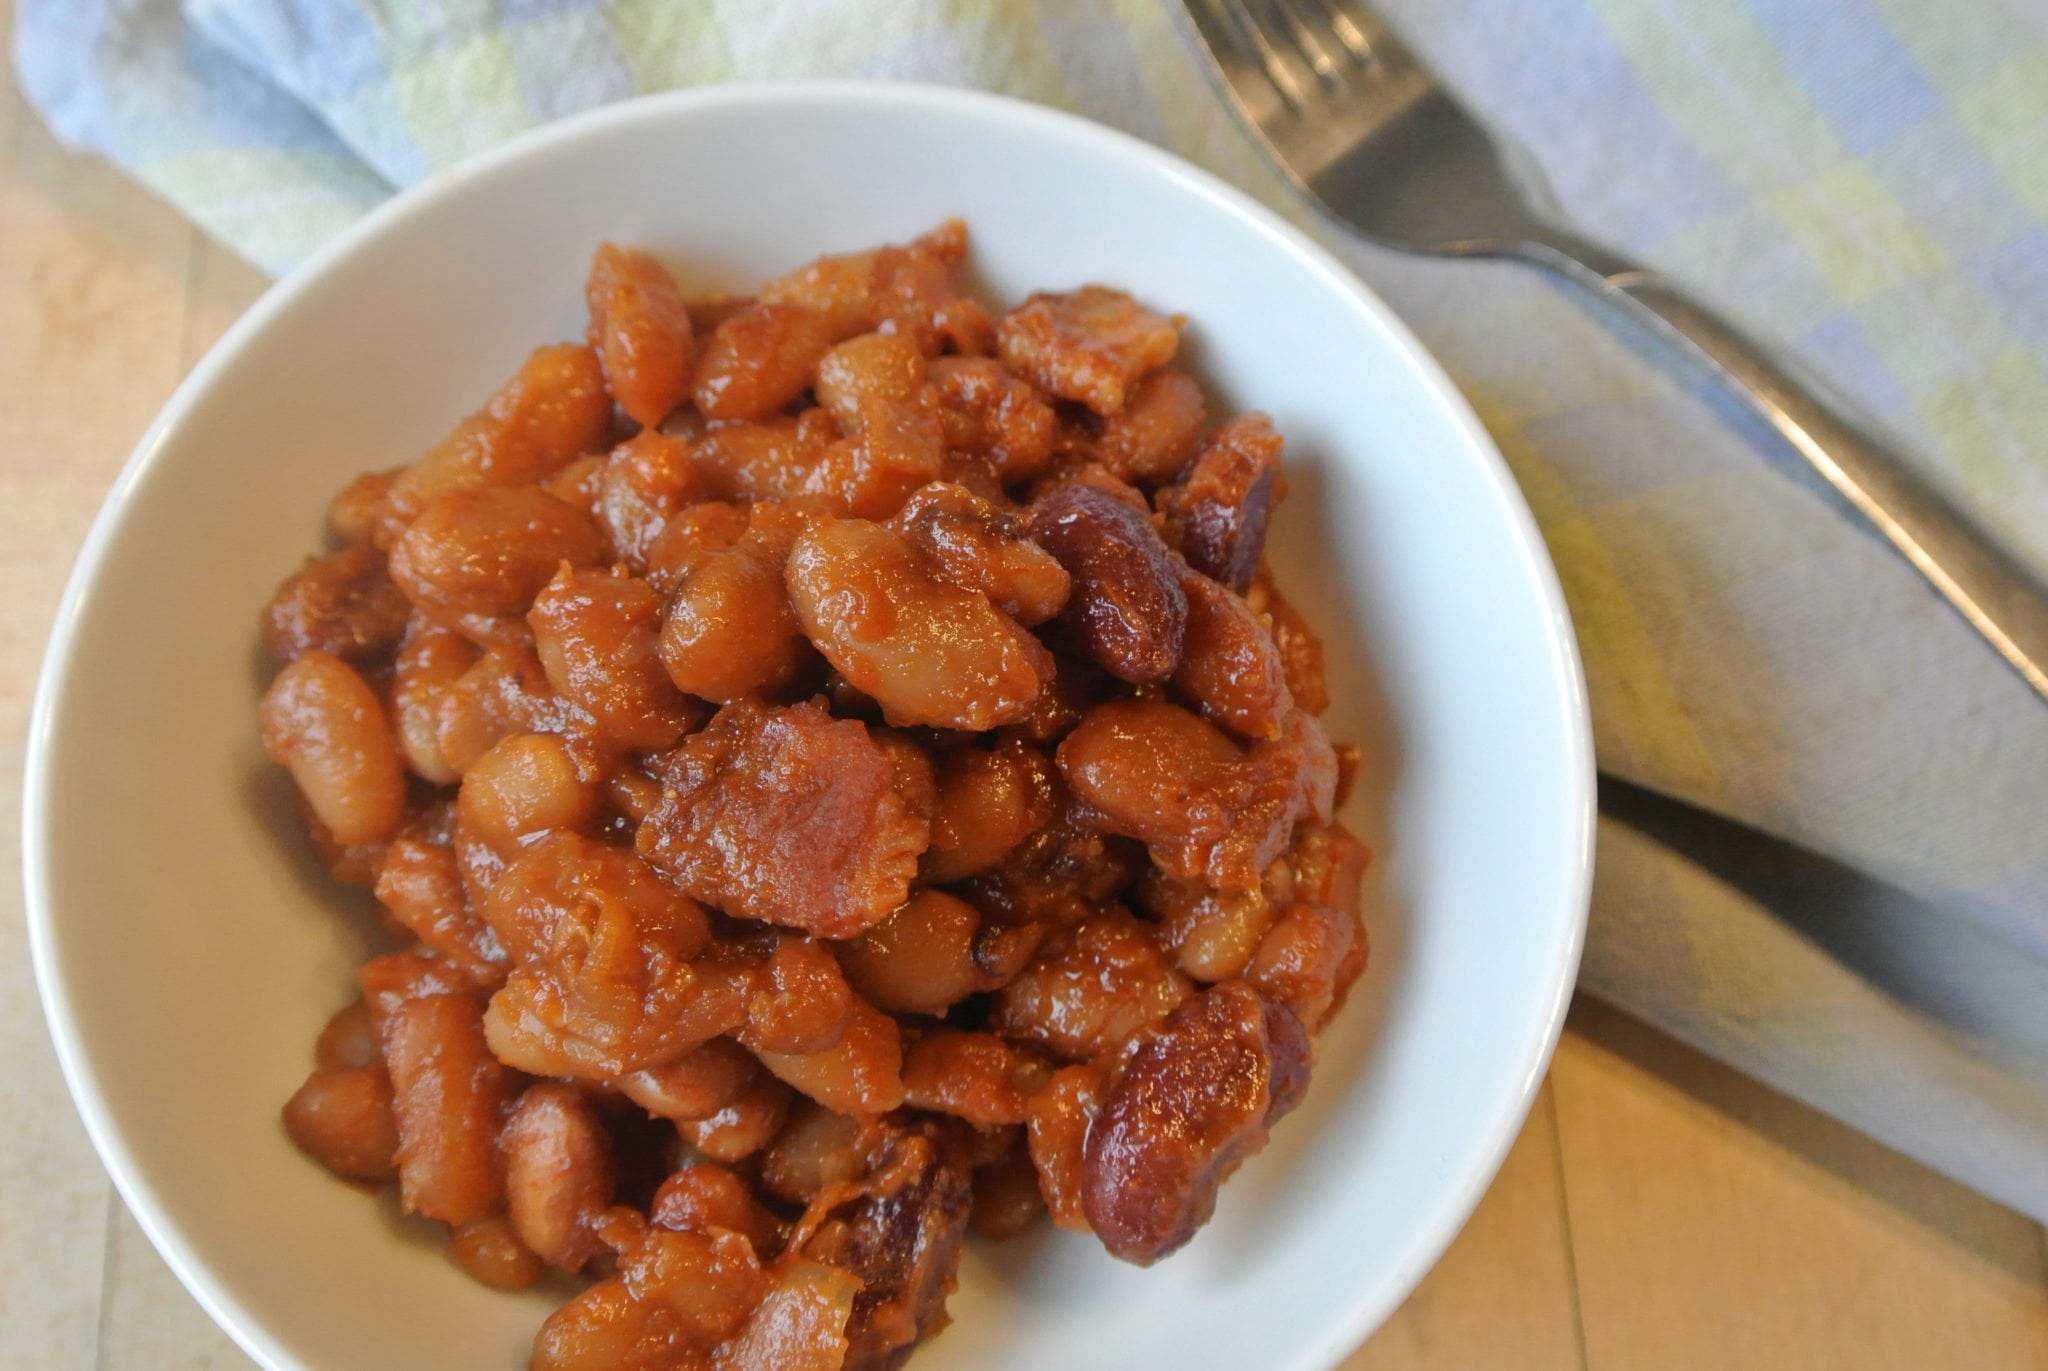 Dutch Oven Baked Beans with Maple and Bacon